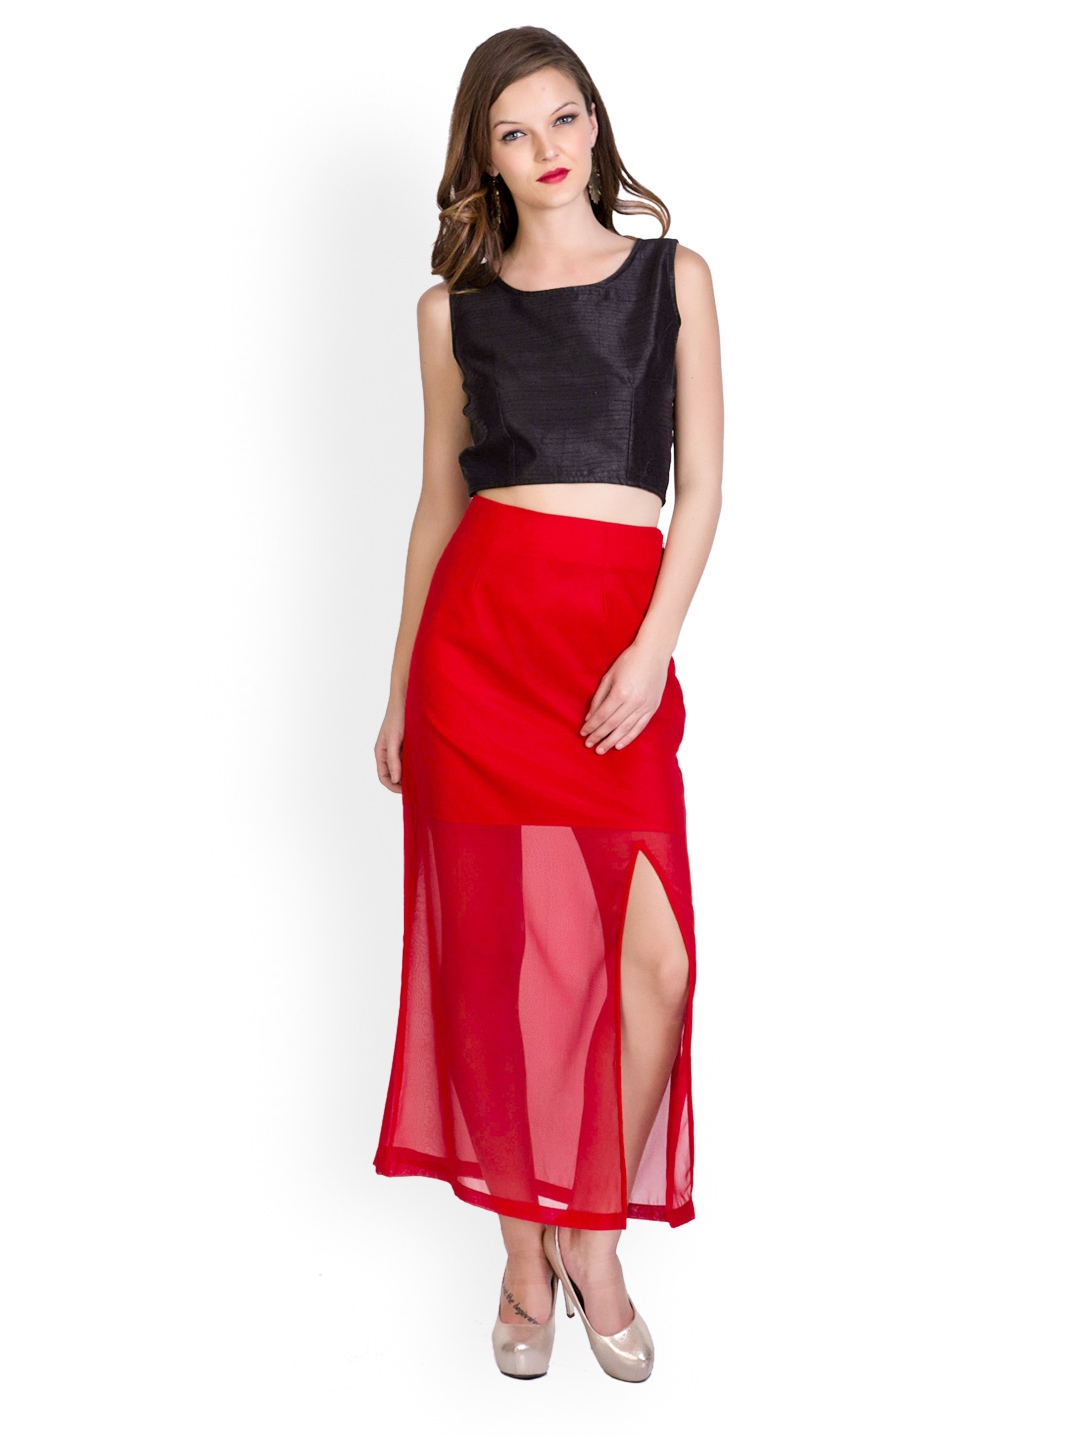 Shop for maxi skirt online at Target. Free shipping on purchases over $35 and save 5% every day with your Target REDcard.